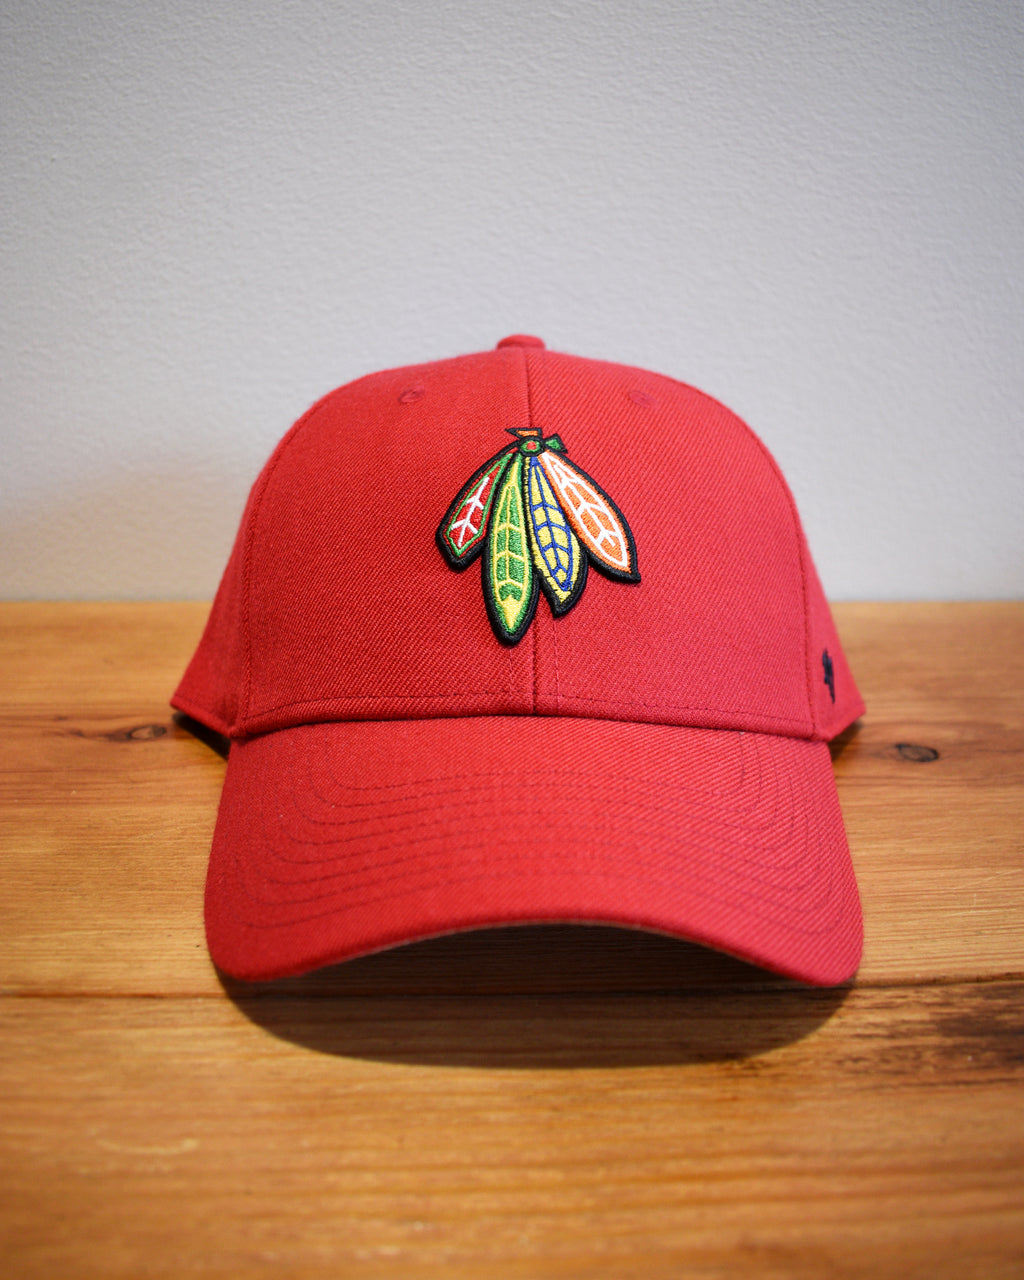 '47 Red Four Feathers MVP Cap